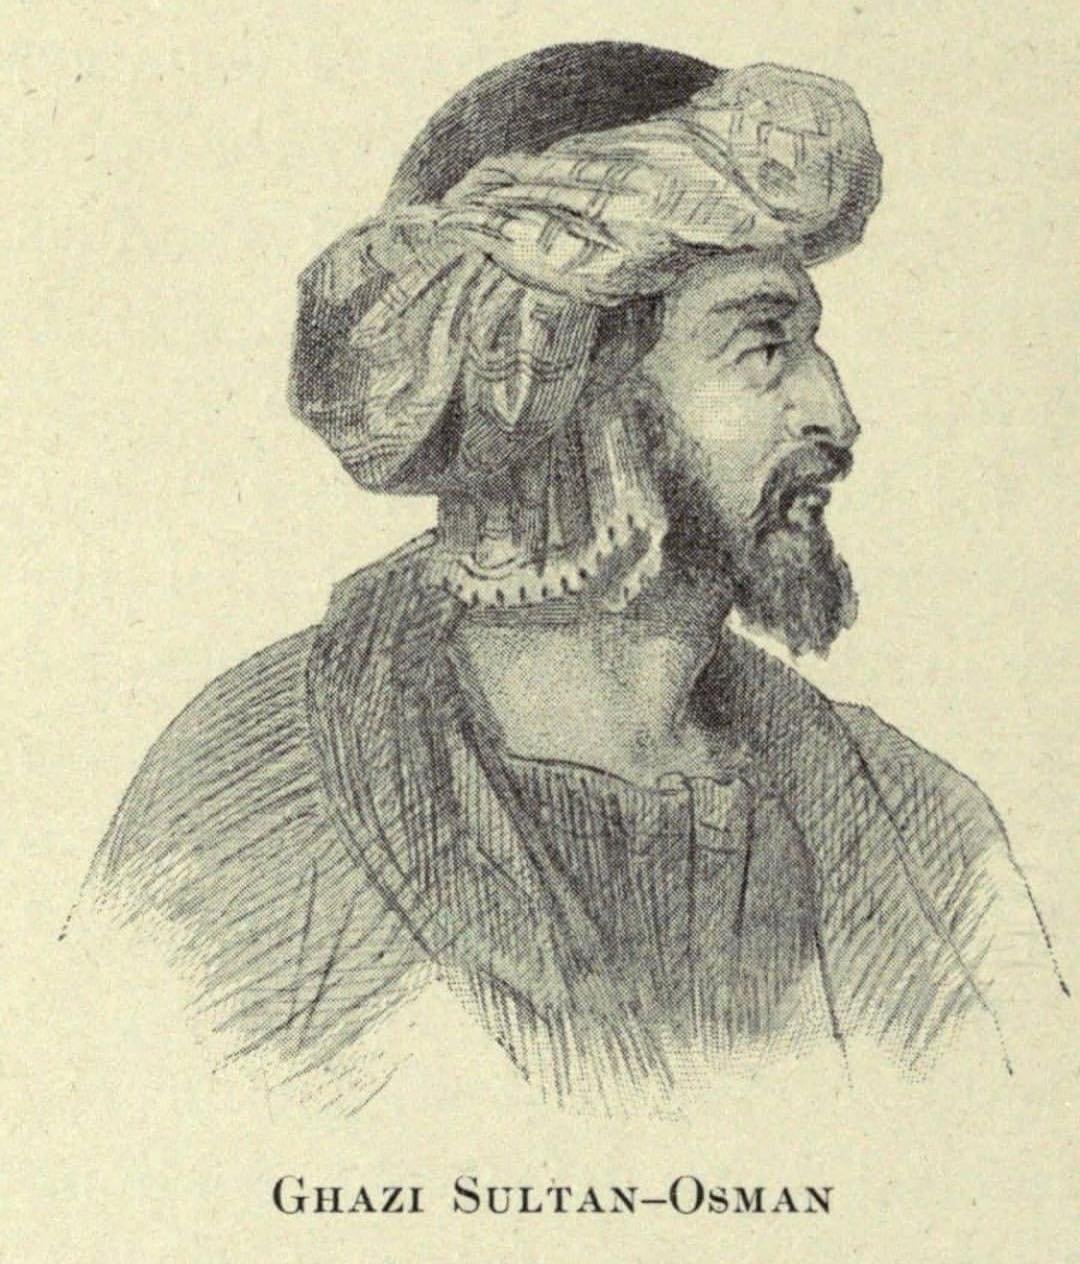 This undated engraving shows Osman Ghazi.